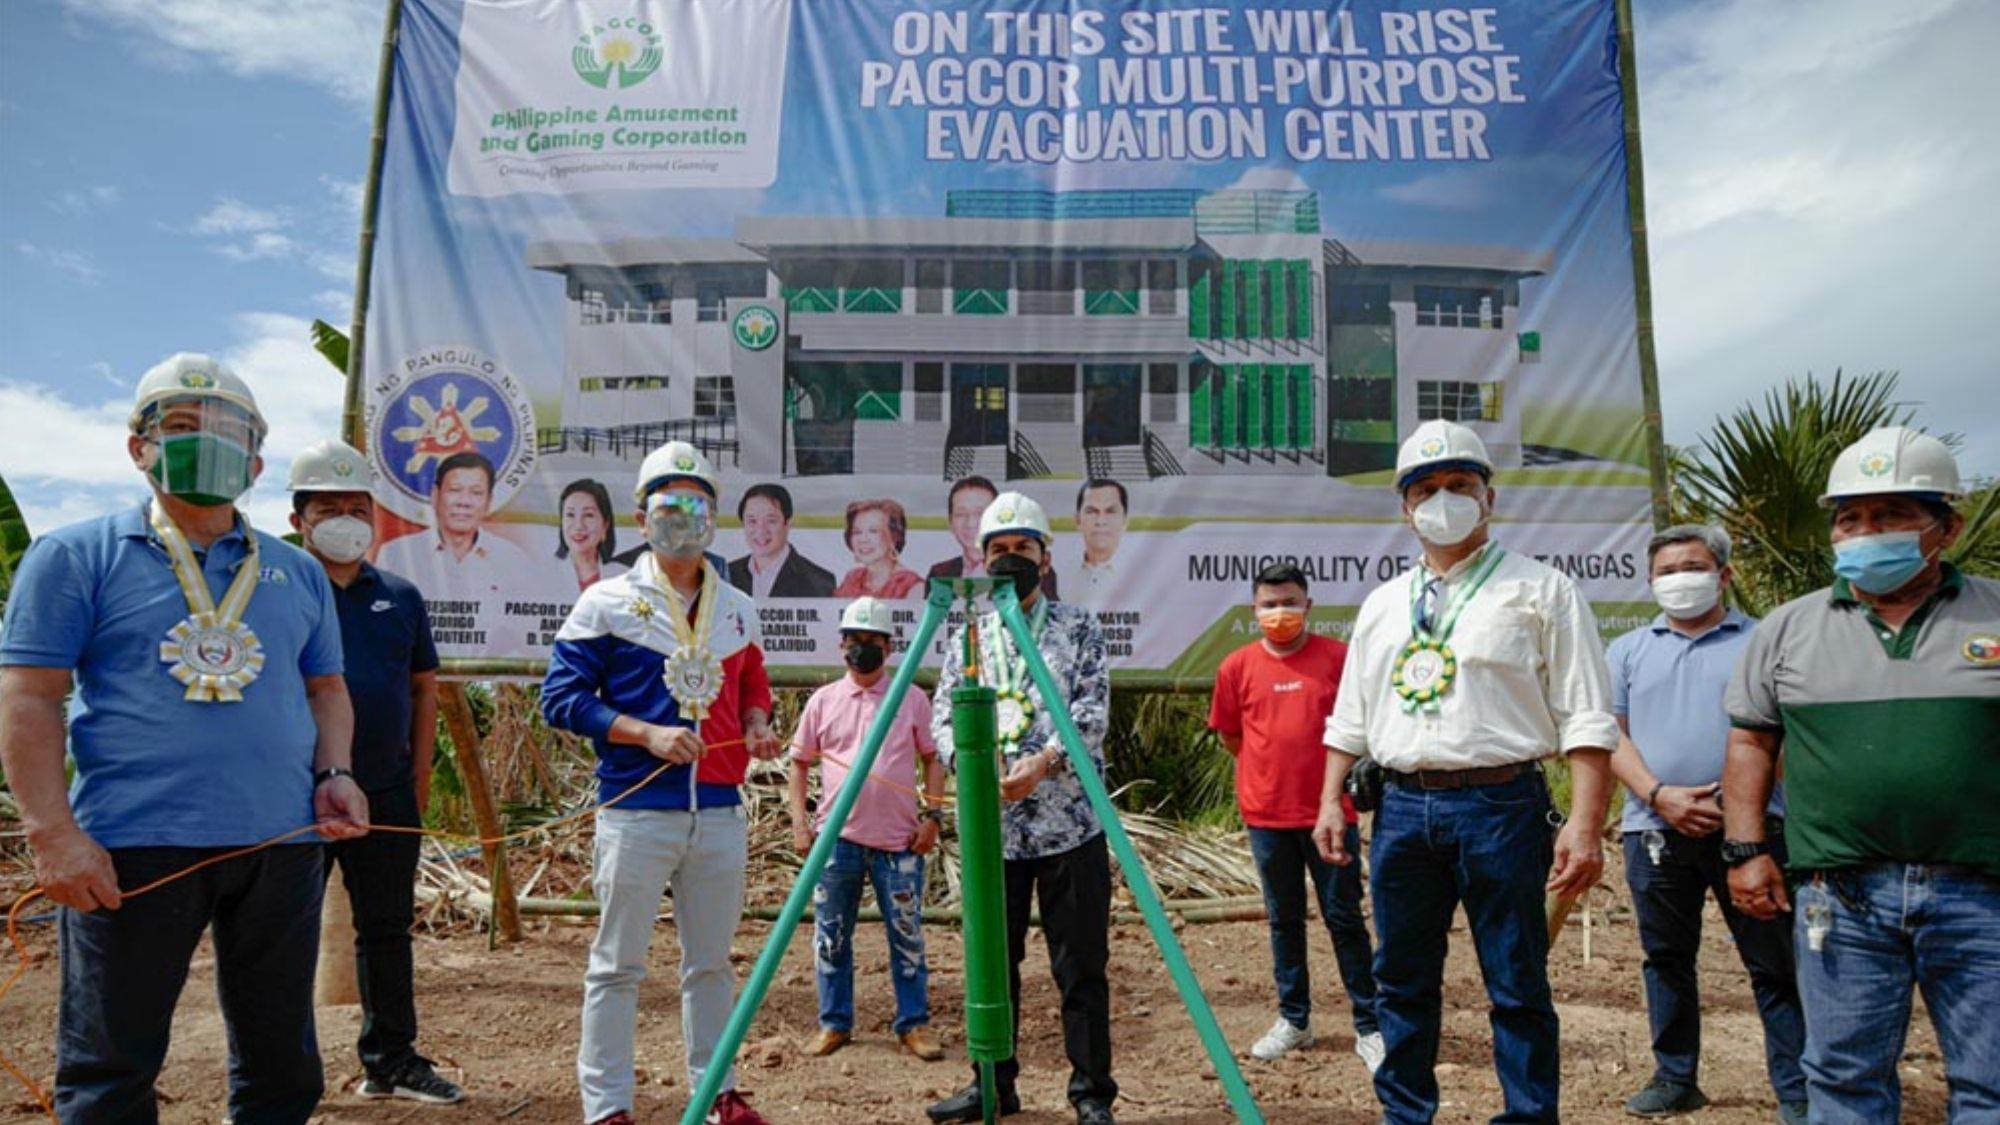 Pagcor-funded evacuation center to rise in San Pablo City